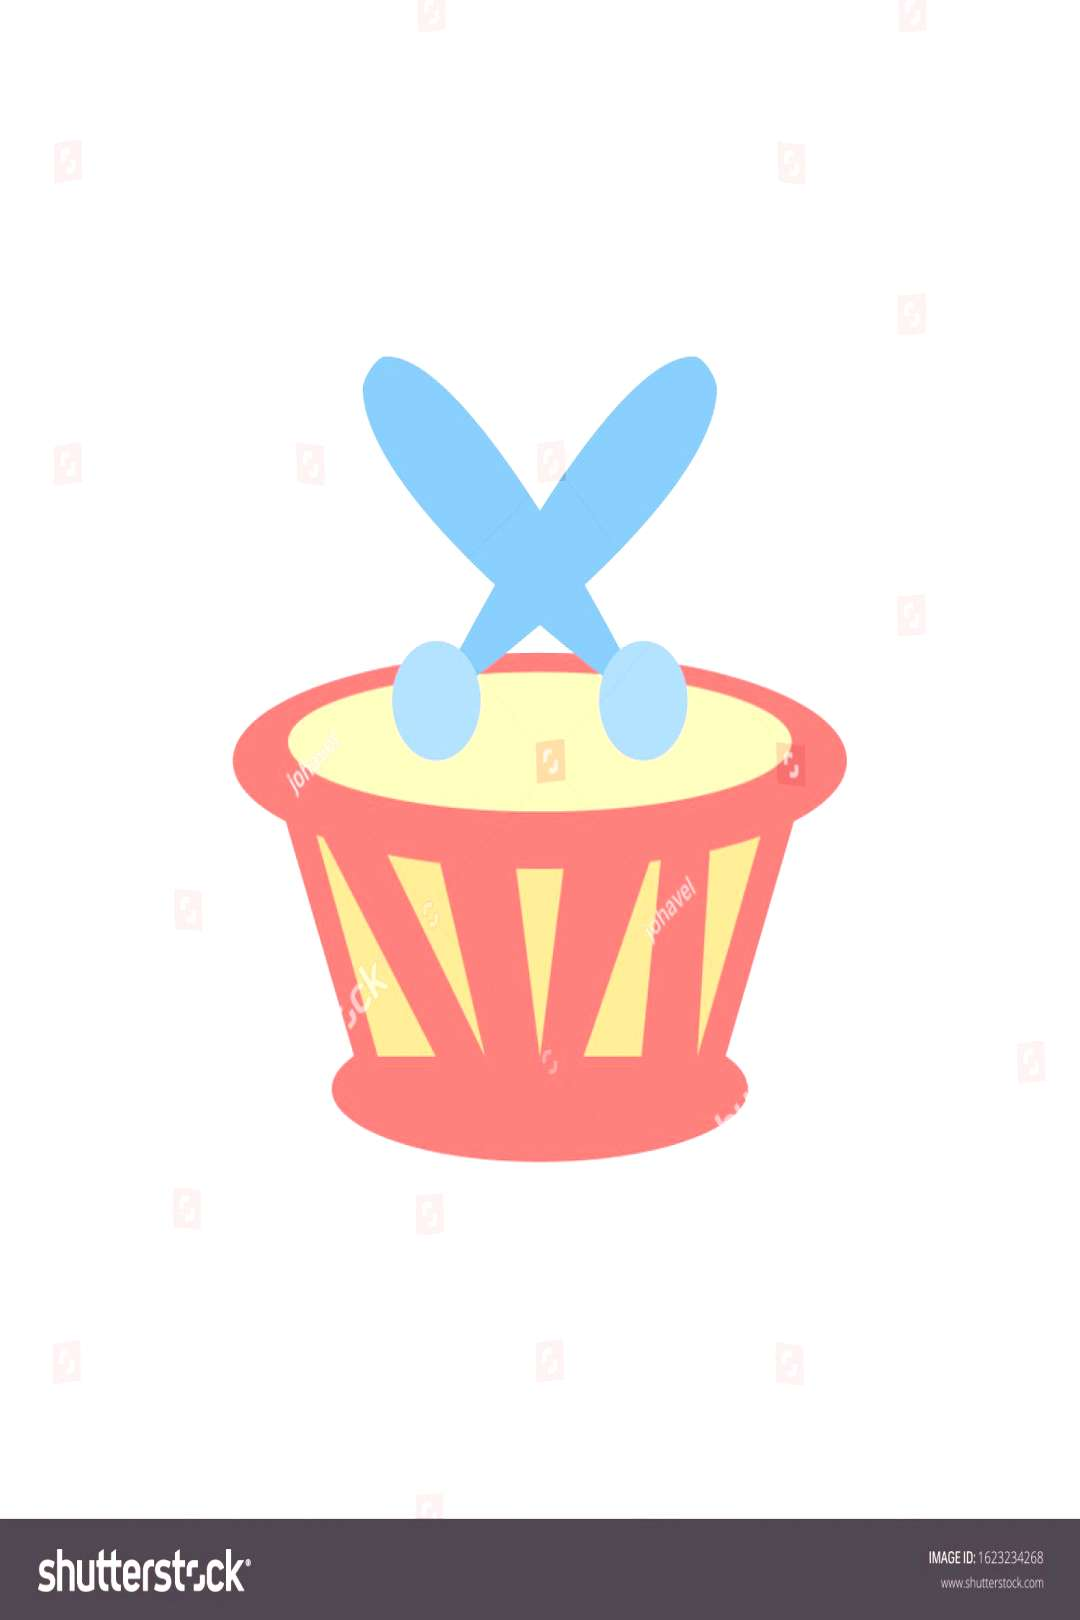 drum toy design of Childhood play fun kid game gift object little and present theme Vector illustra